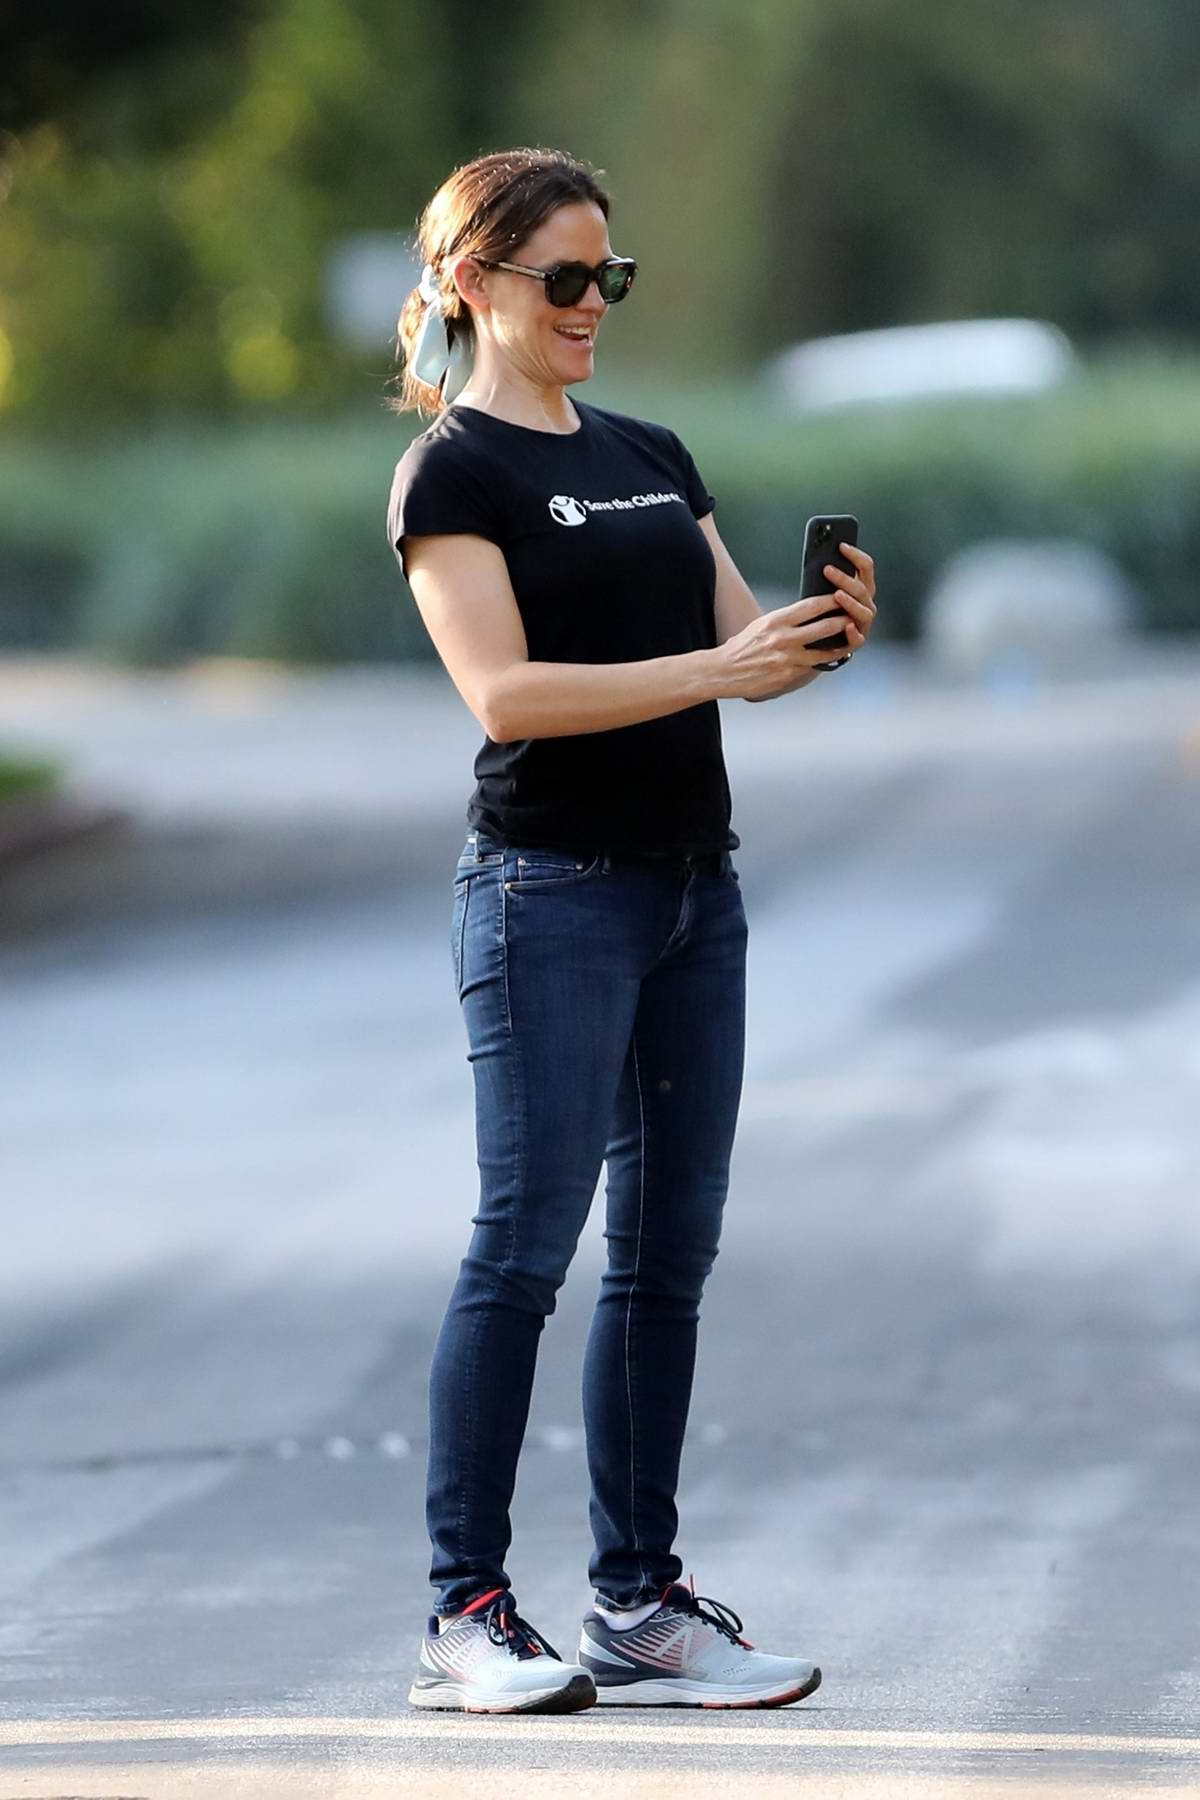 Jennifer Garner visits a construction site with her kids in in Brentwood, California